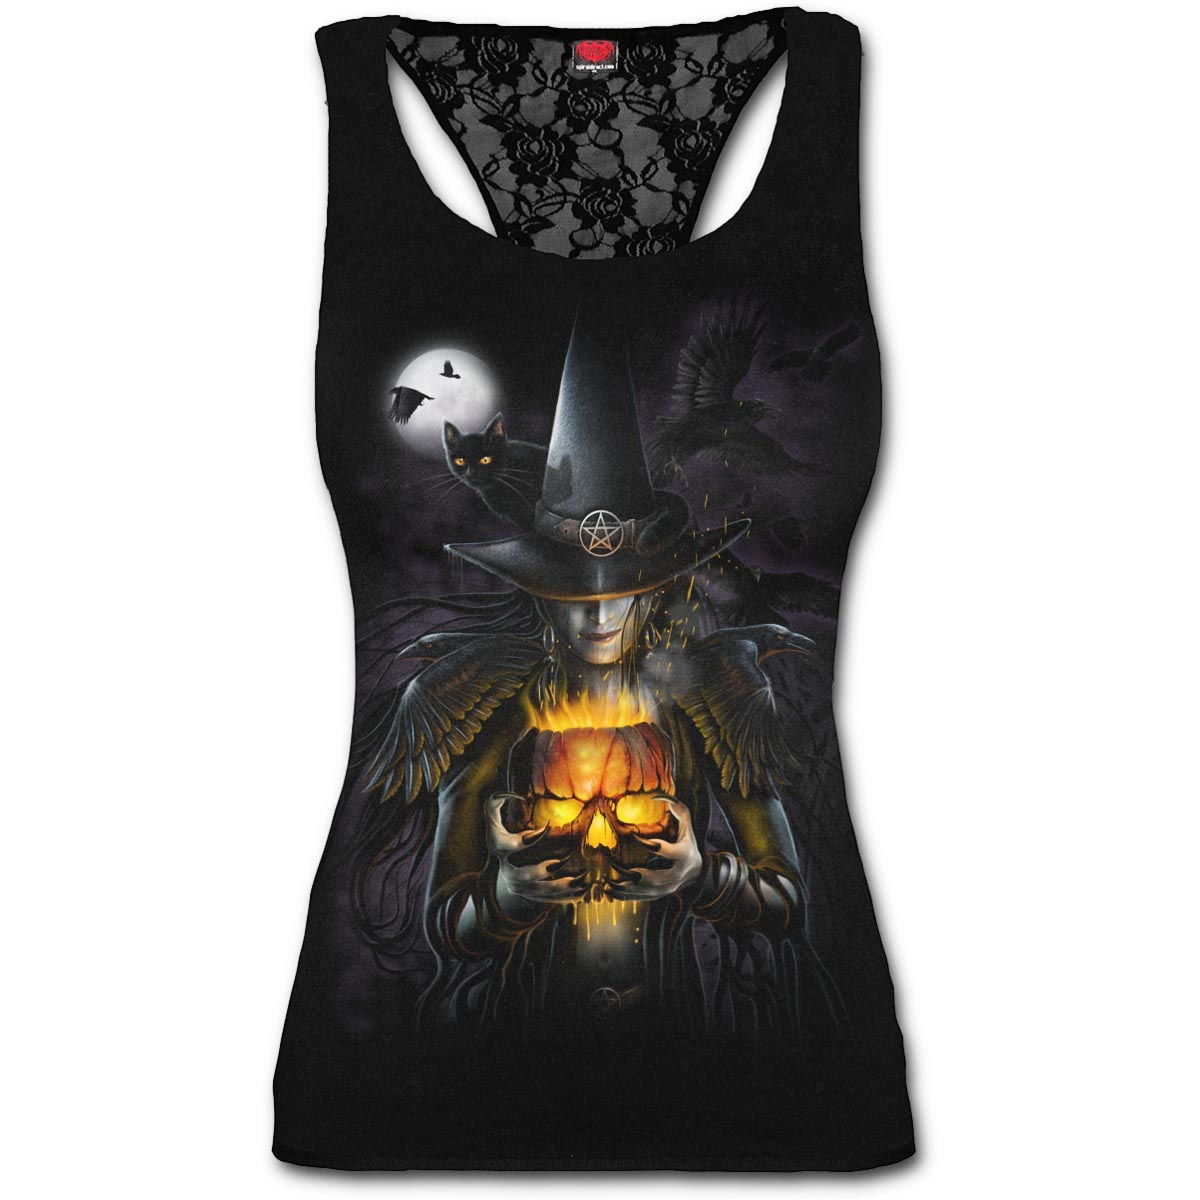 Spiral-Ladies-Black-Goth-WITCHING-HOUR-Halloween-Lace-Vest-Top-All-Sizes thumbnail 5